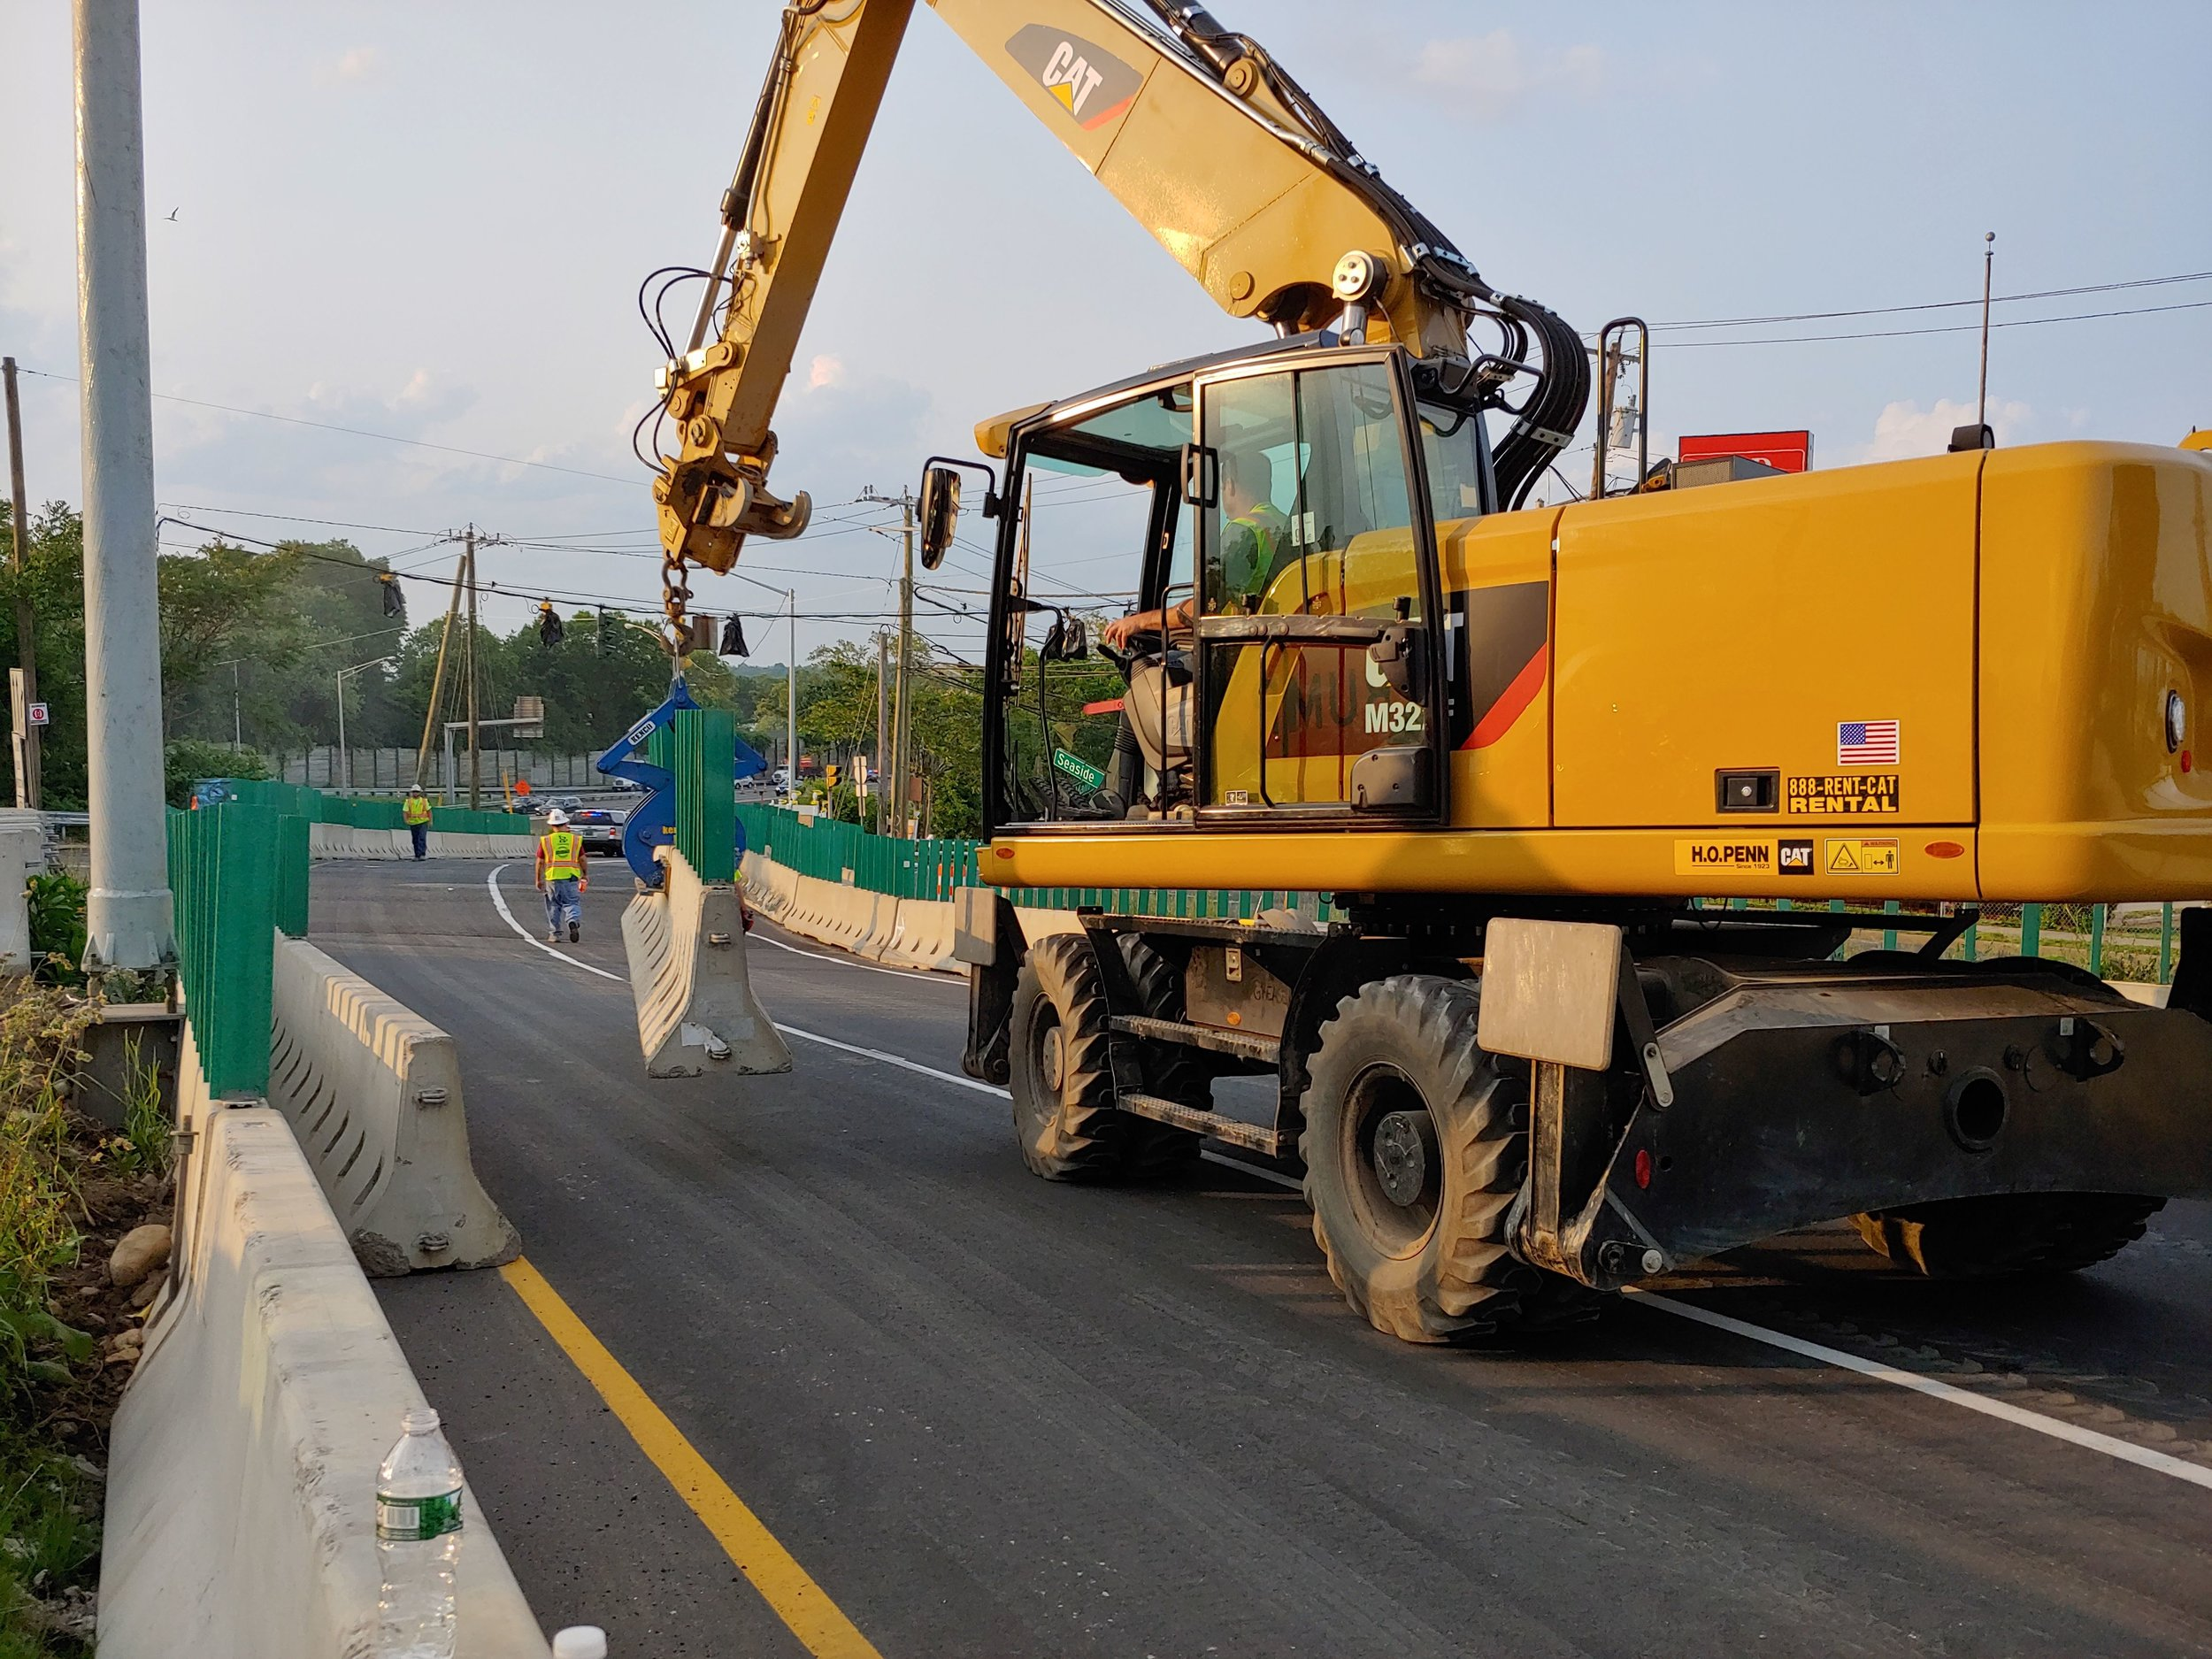 Removing barriers from temporary roadway.  Taken on afternoon of 6/2/19 by Jill Barrett